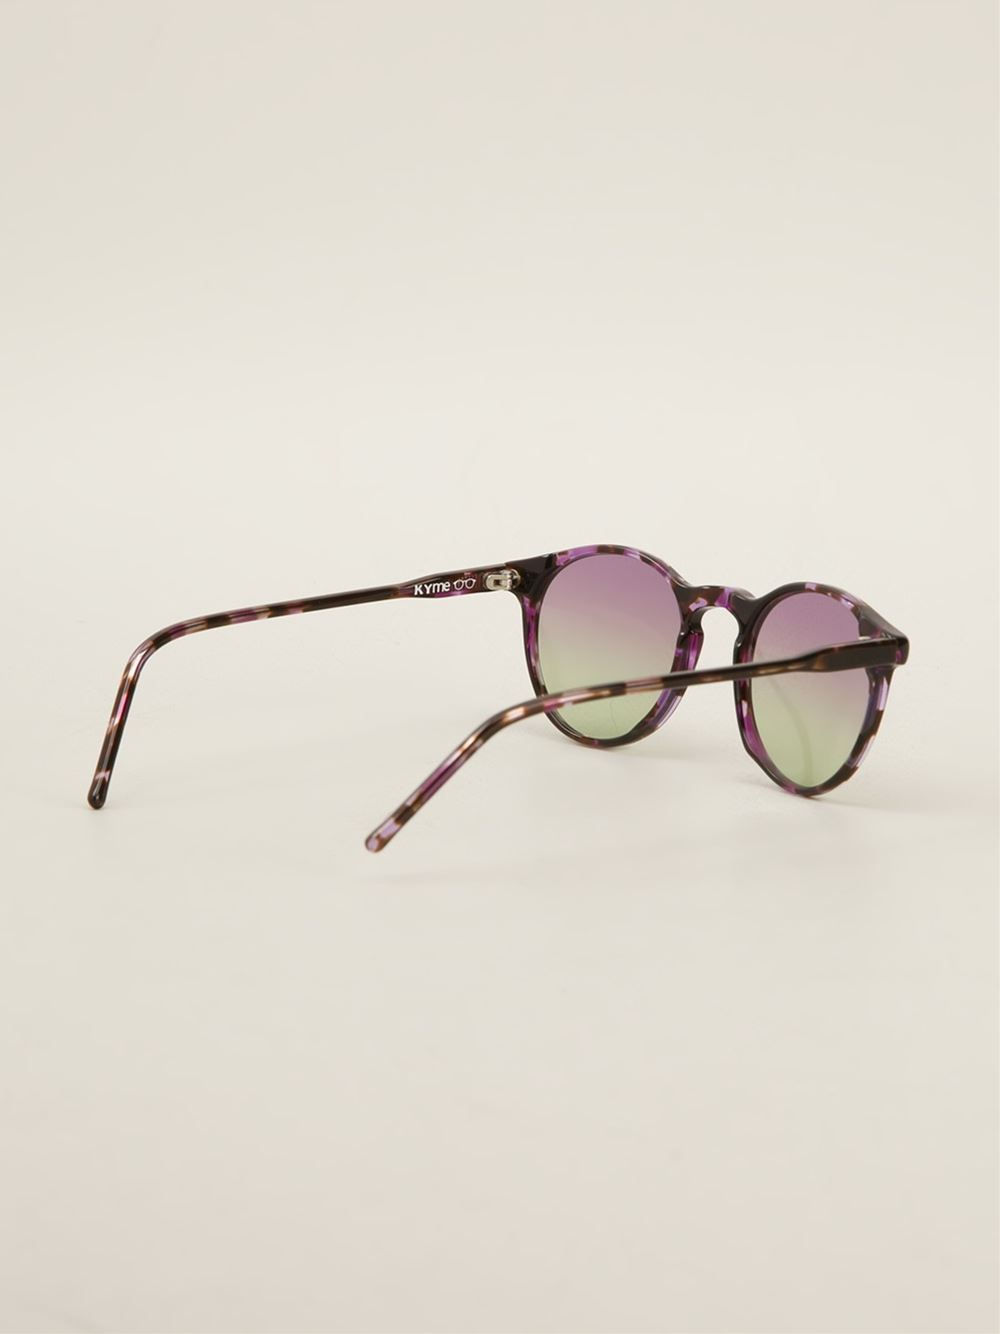 Kyme 'tart' Sunglasses - Stefania Mode - Farfetch.com